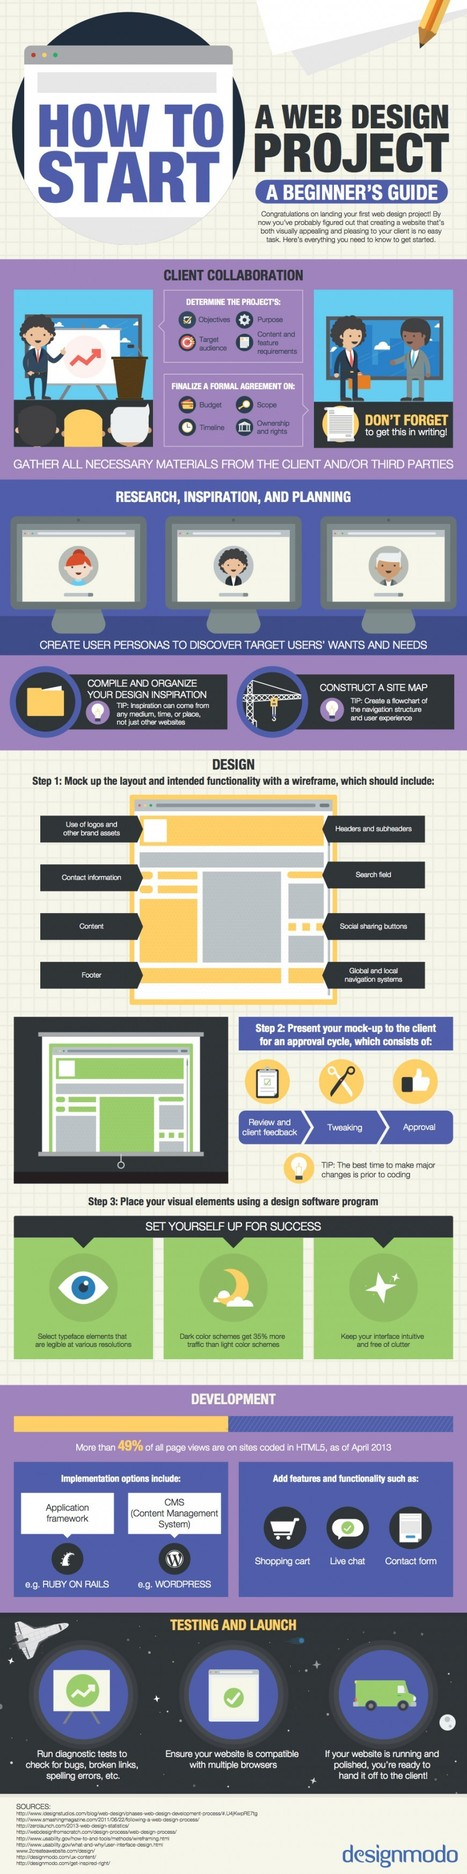 How to Start a Web Design Project: A Beginner's Guide [INFOGRAPHIC] | Good stuff online | Scoop.it